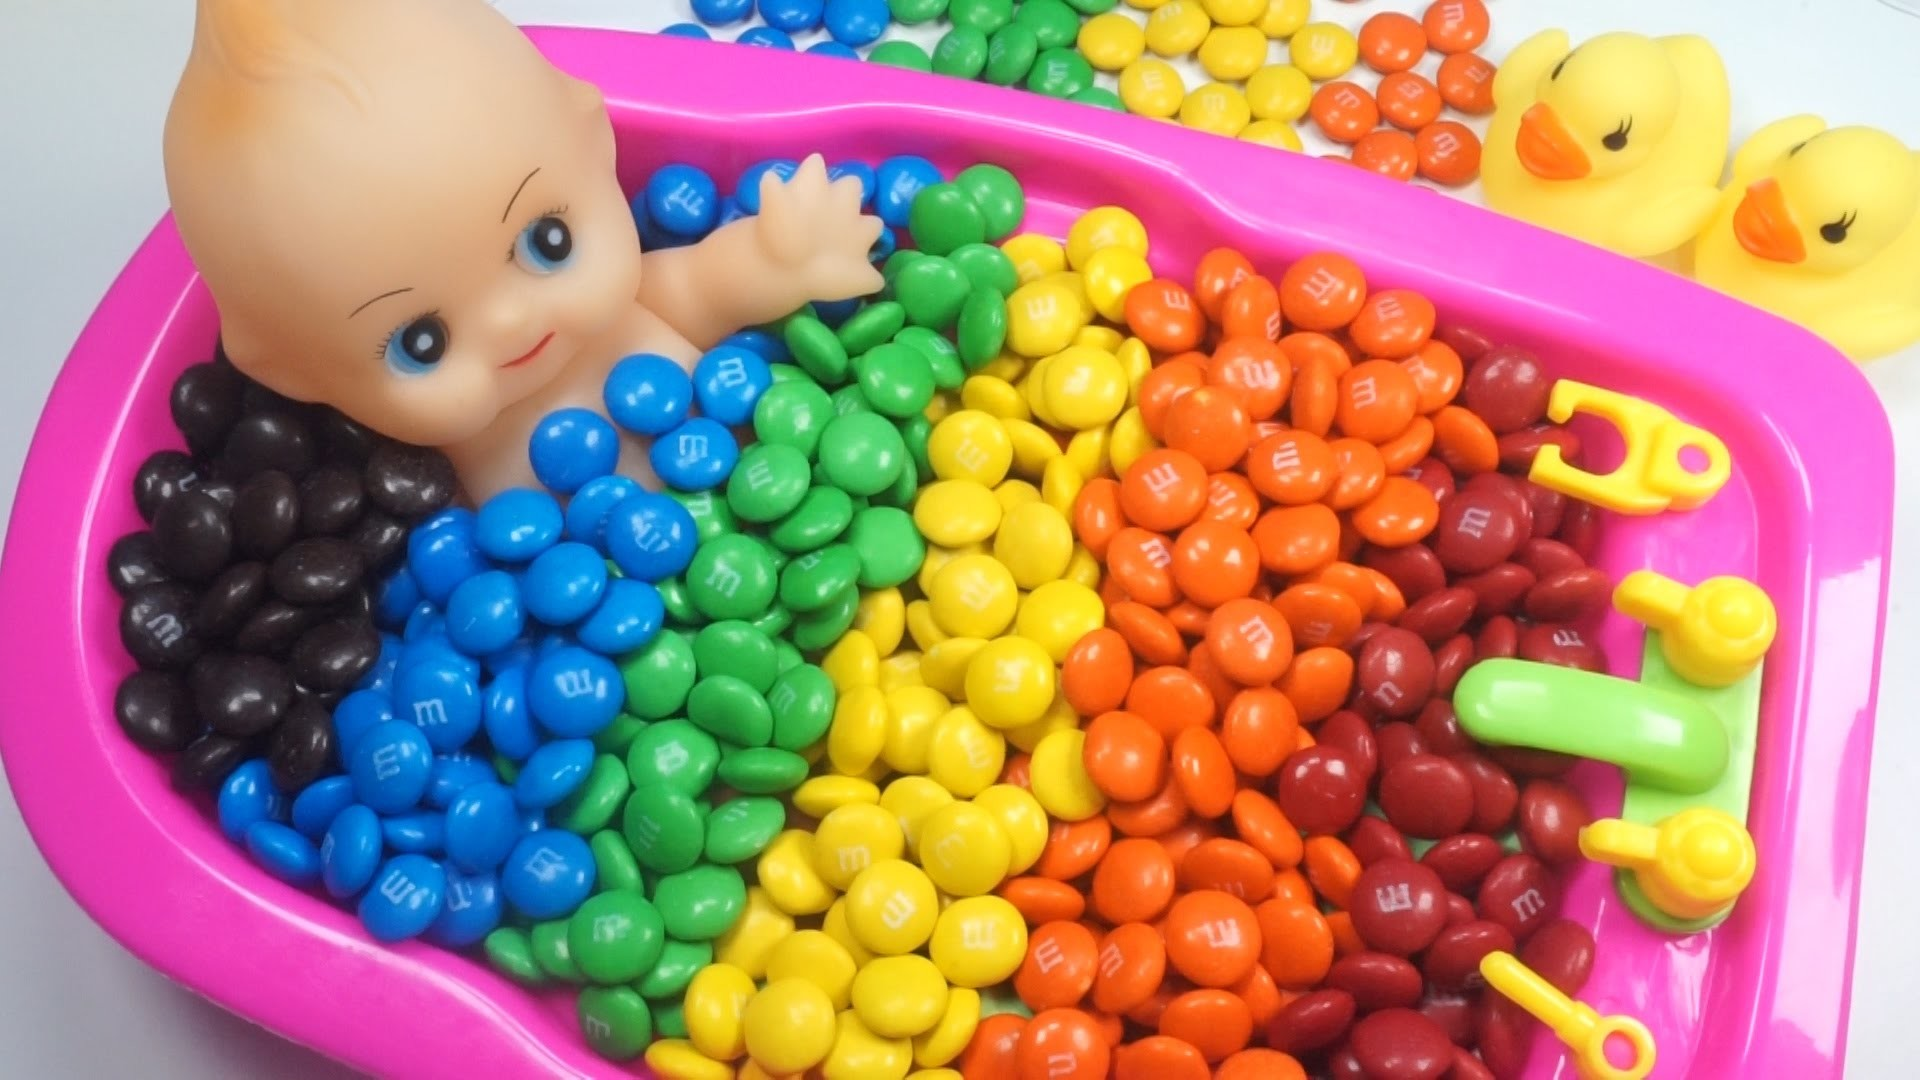 1920x1080 Learn Colors Baby Doll Bath Time M&M's Chocolate Candy How to Bath Baby  Videos Kids Pretend Play - YouTube